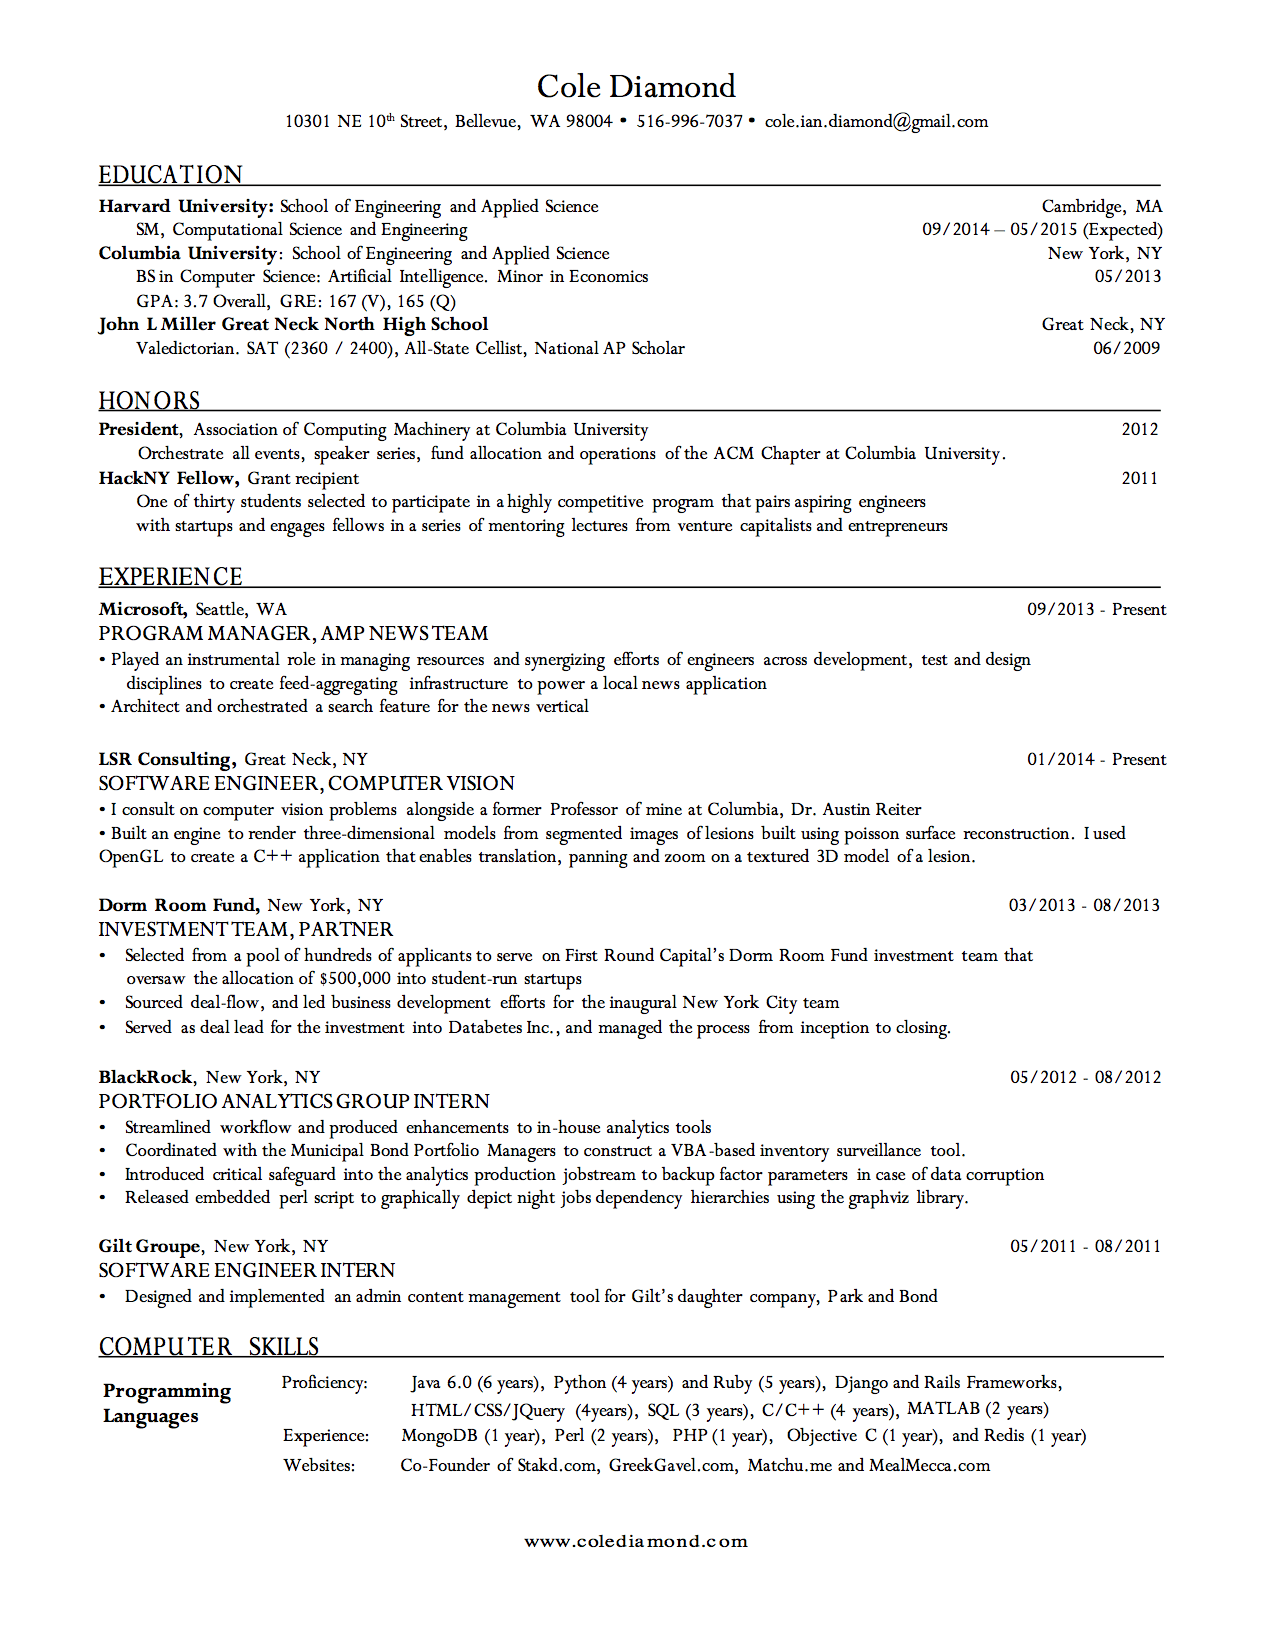 College Resume Examples Harvard Resume Cole Diamond